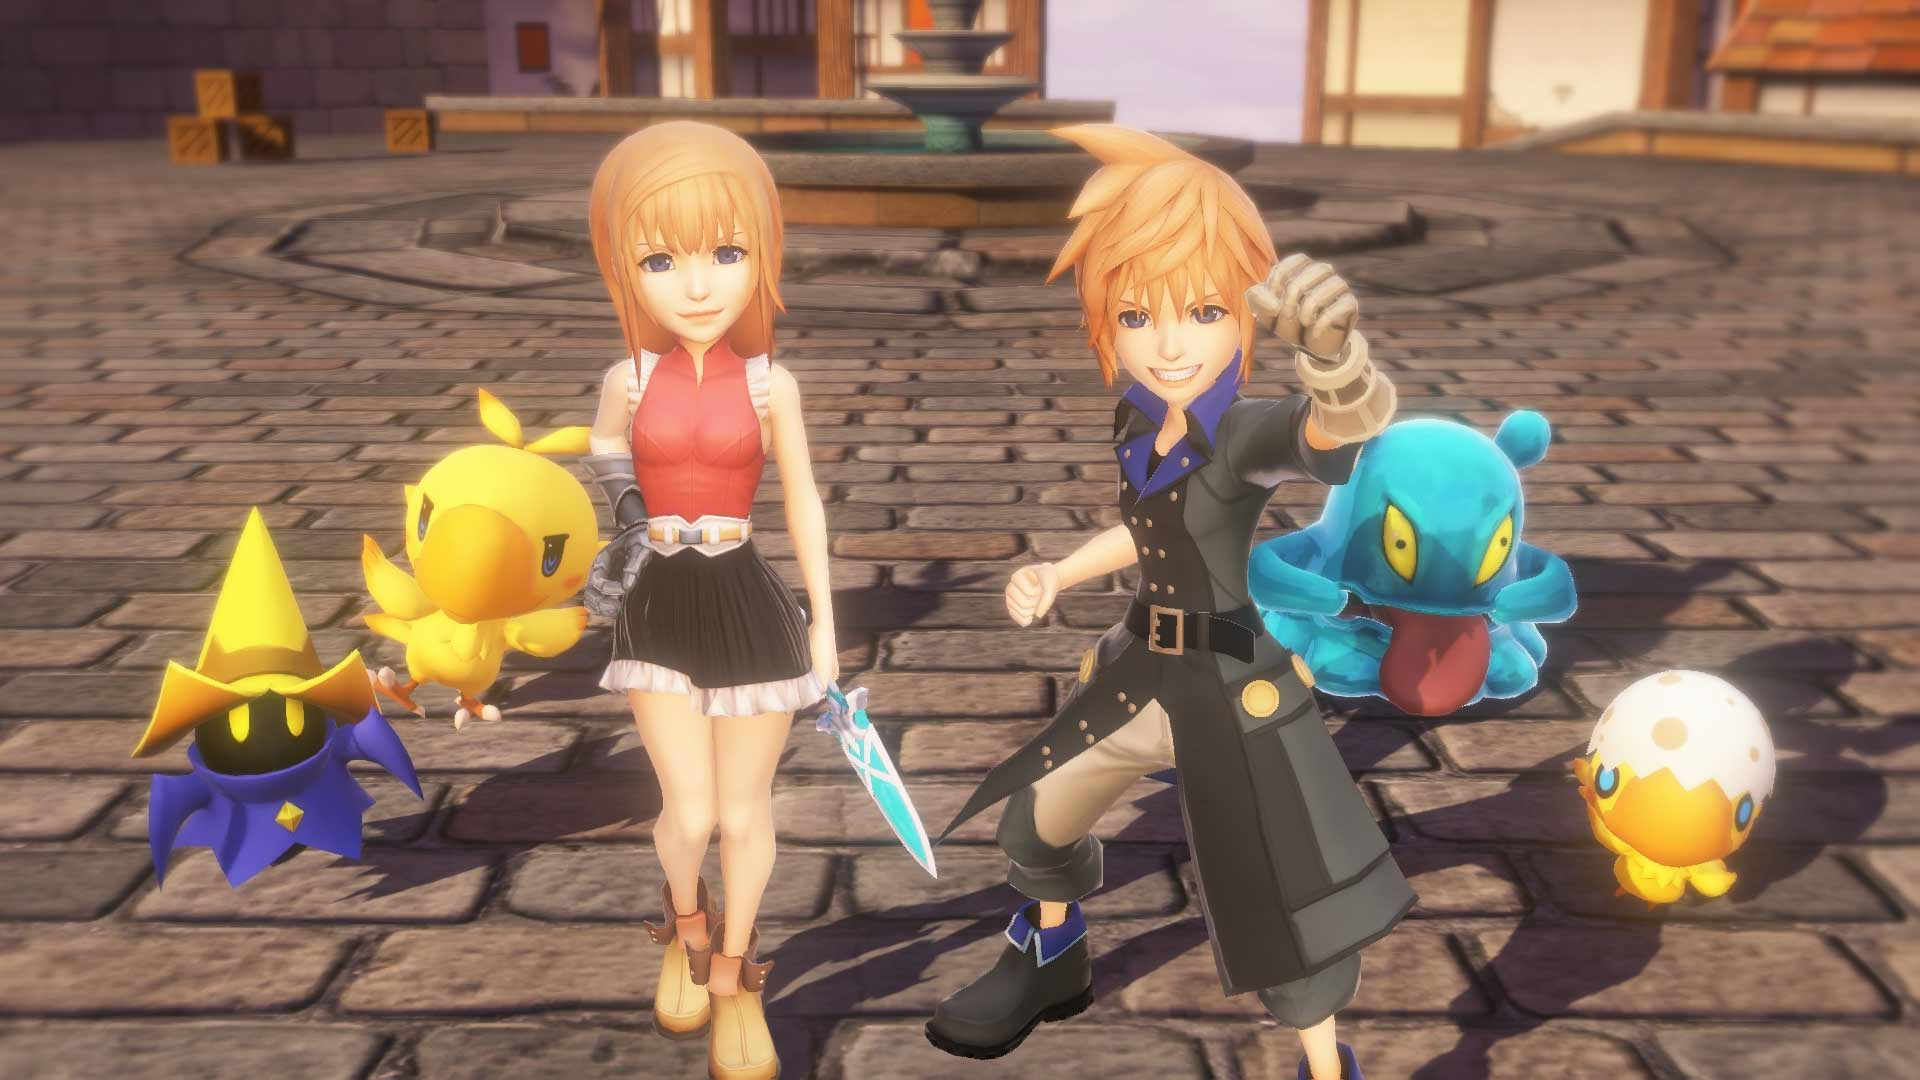 download world of final fantasy cracked by codex include all dlc and latest update mirrorace multiup